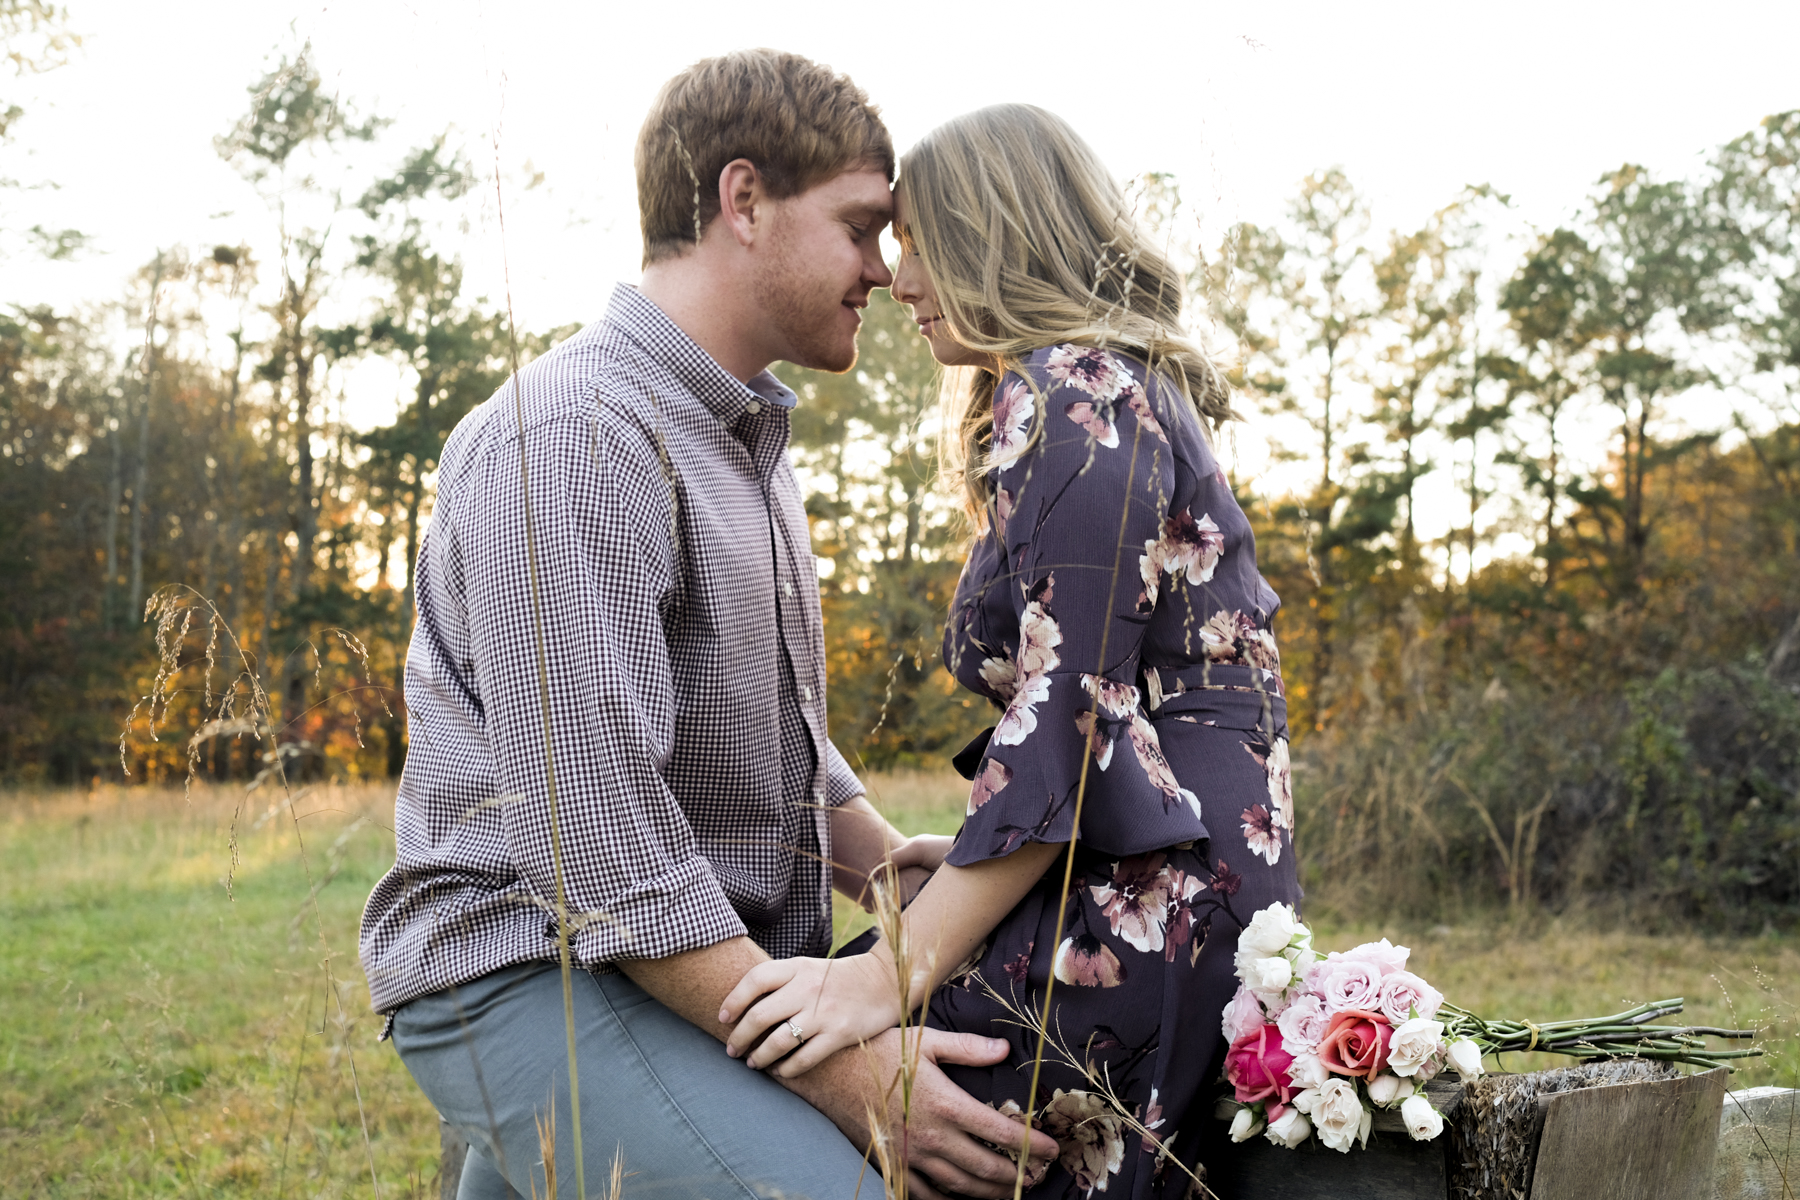 engagement_photography_austin_texas_bailey_toksoz_photography_28.jpeg